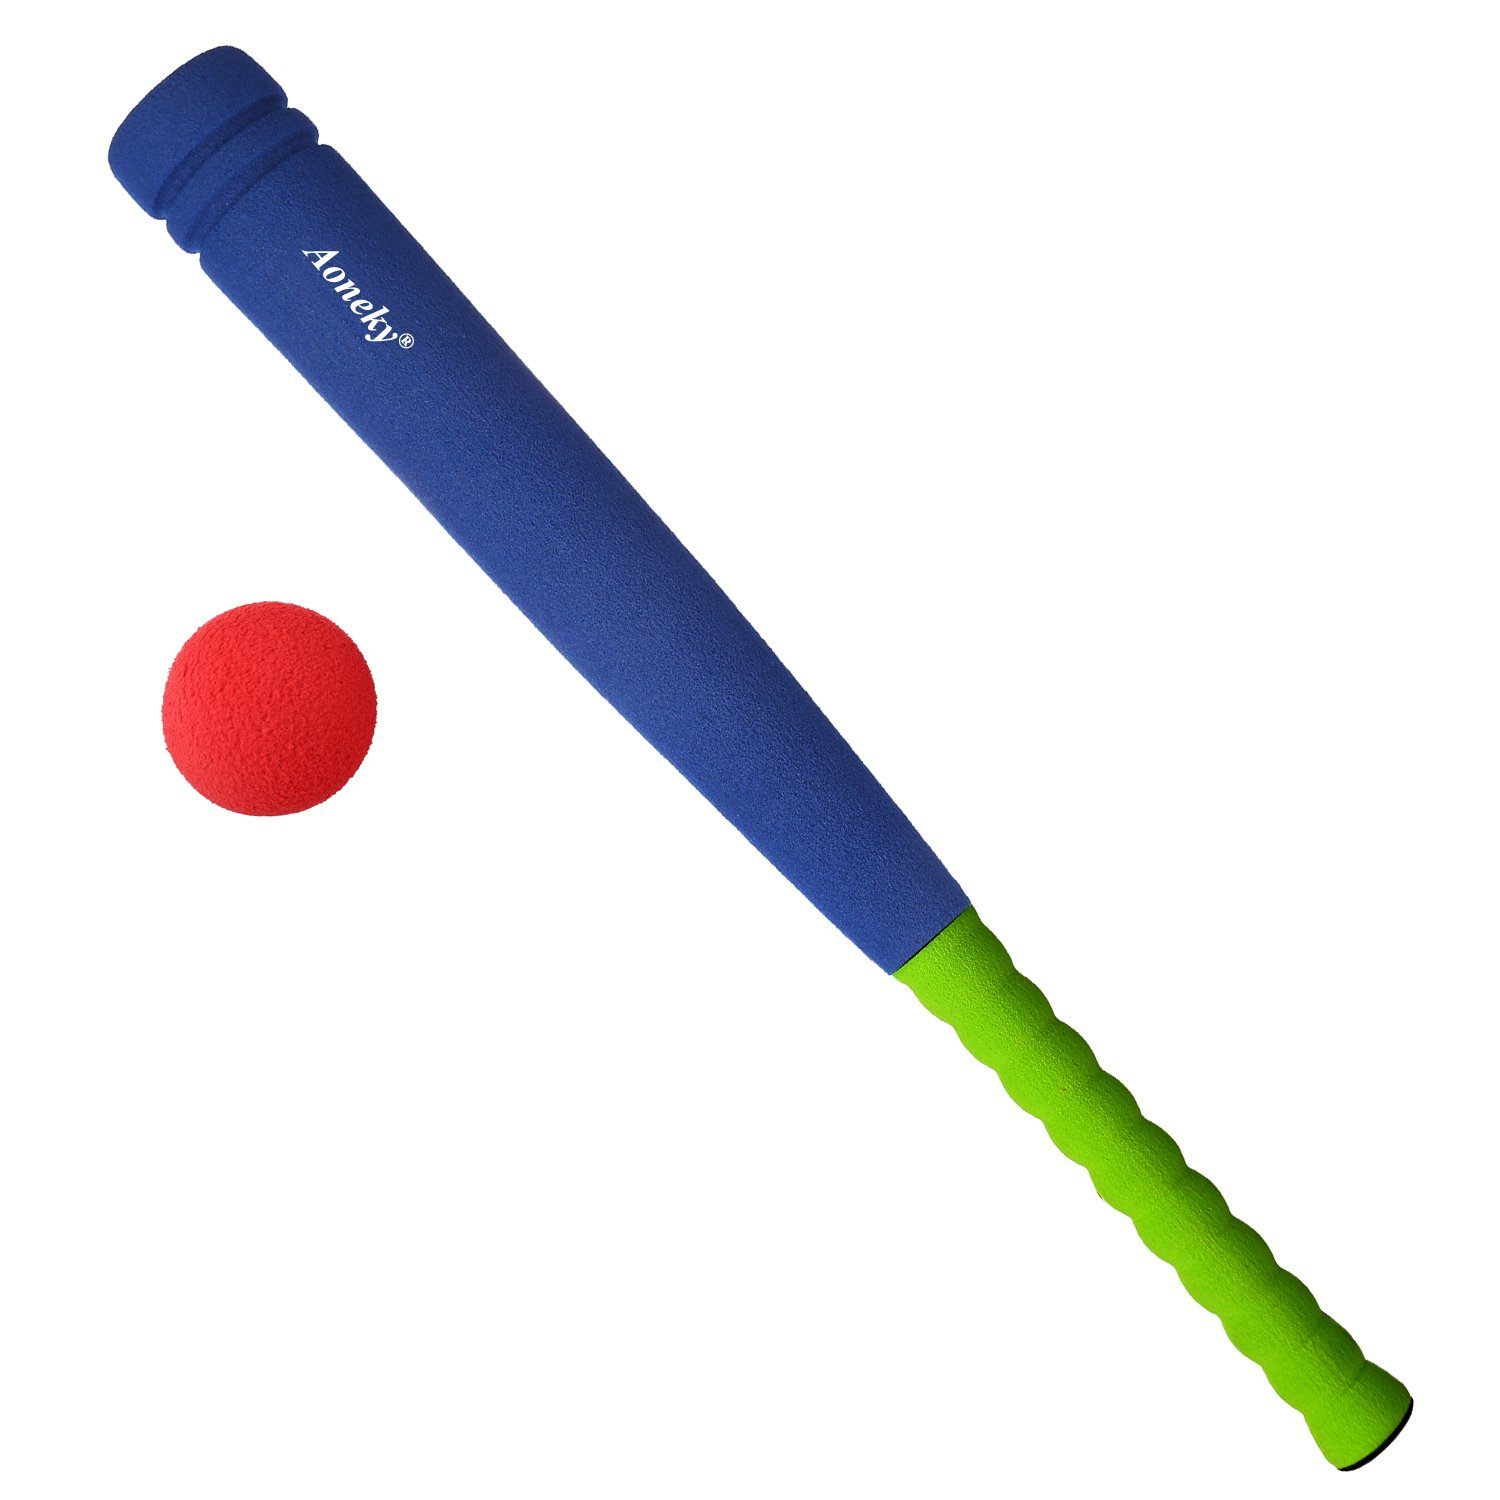 Amazon Kids Foam Baseball Bat Toys Indoor Soft Super Safe T Ball Set for Children Age 3 5 Years Old Toys & Games